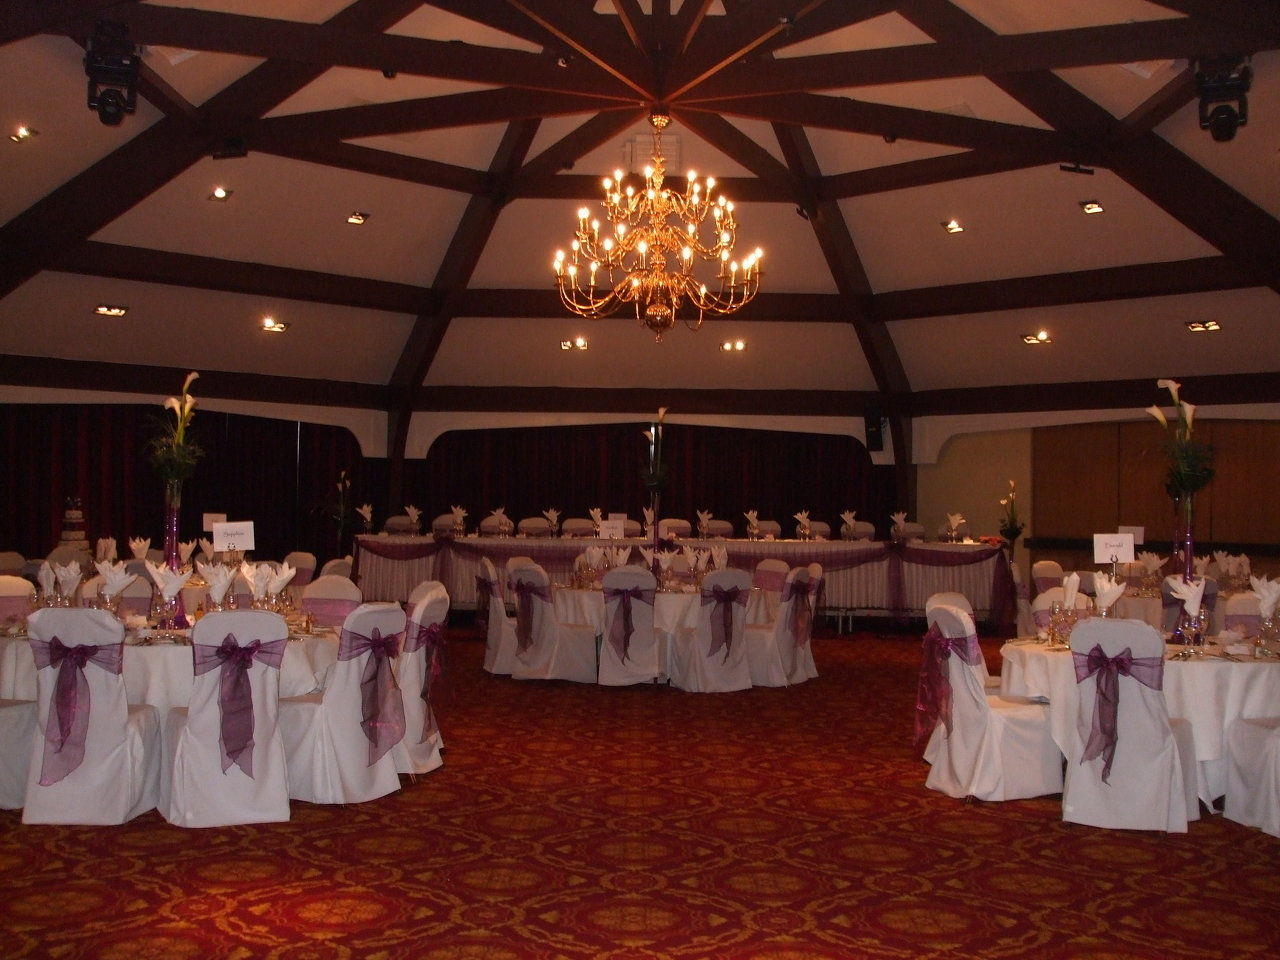 chair cover and sash hire glasgow balancing ball chairs with flair wedding events planning